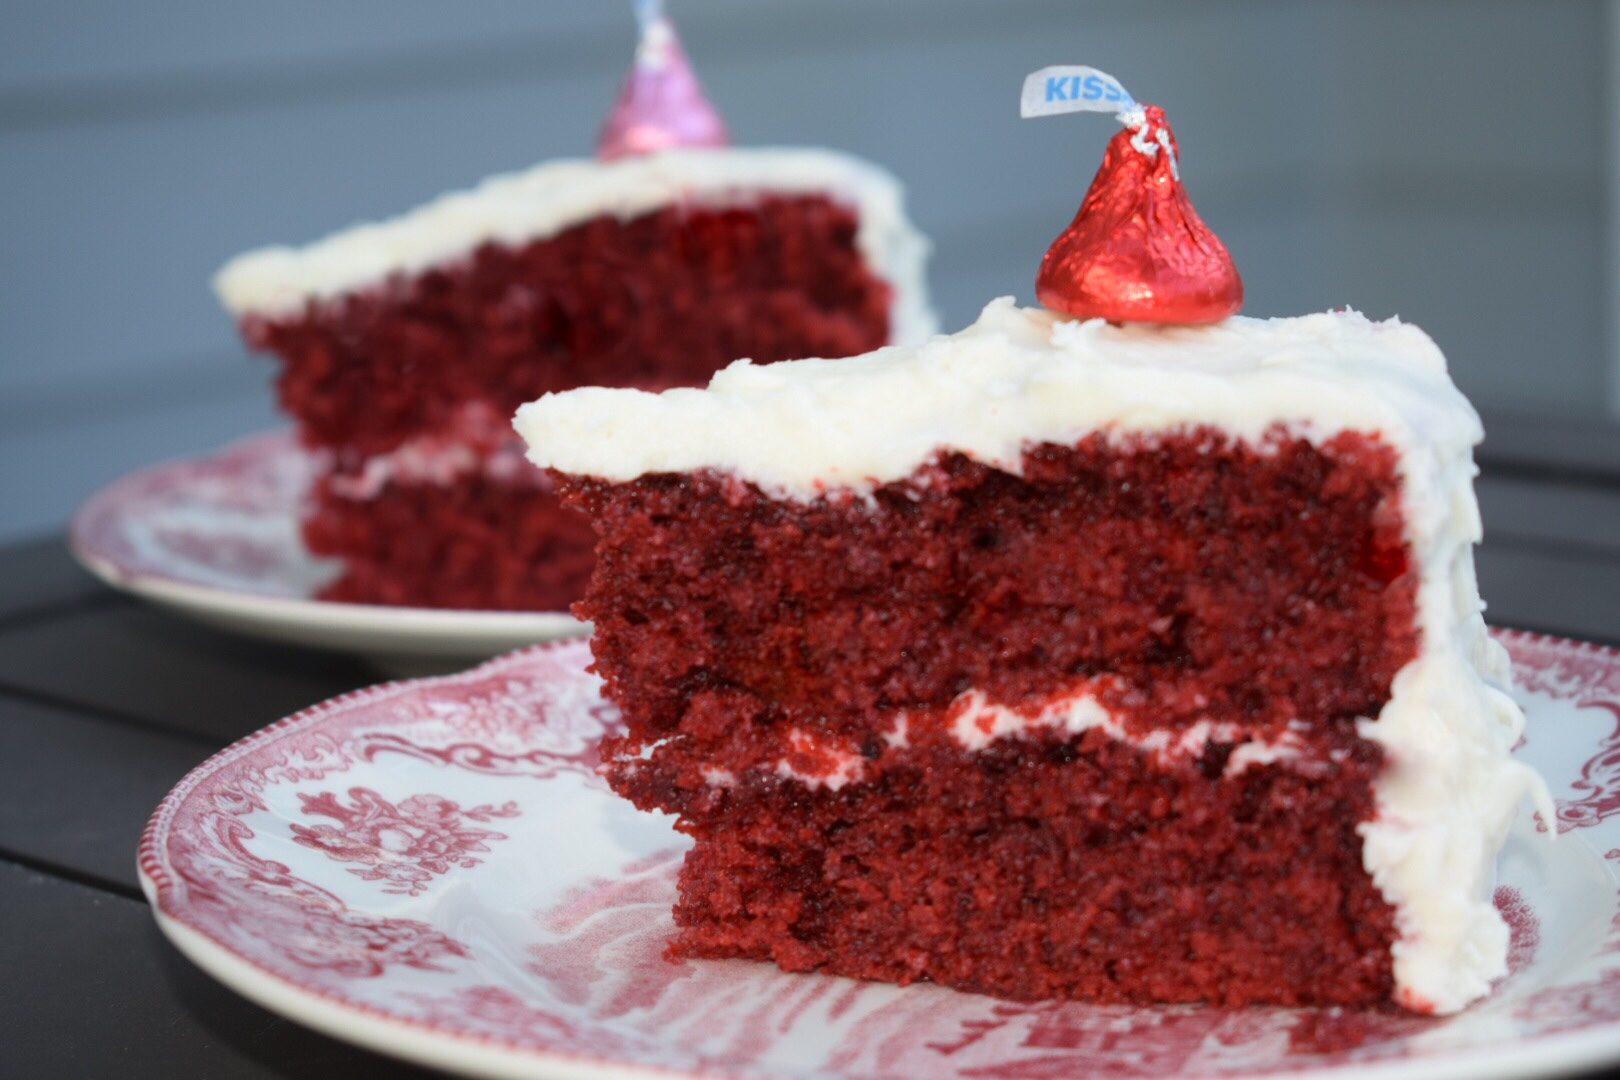 Two slices of red velvet cake on toile Johnson Bros plates topped with pink and red chocolate Hershey kisses